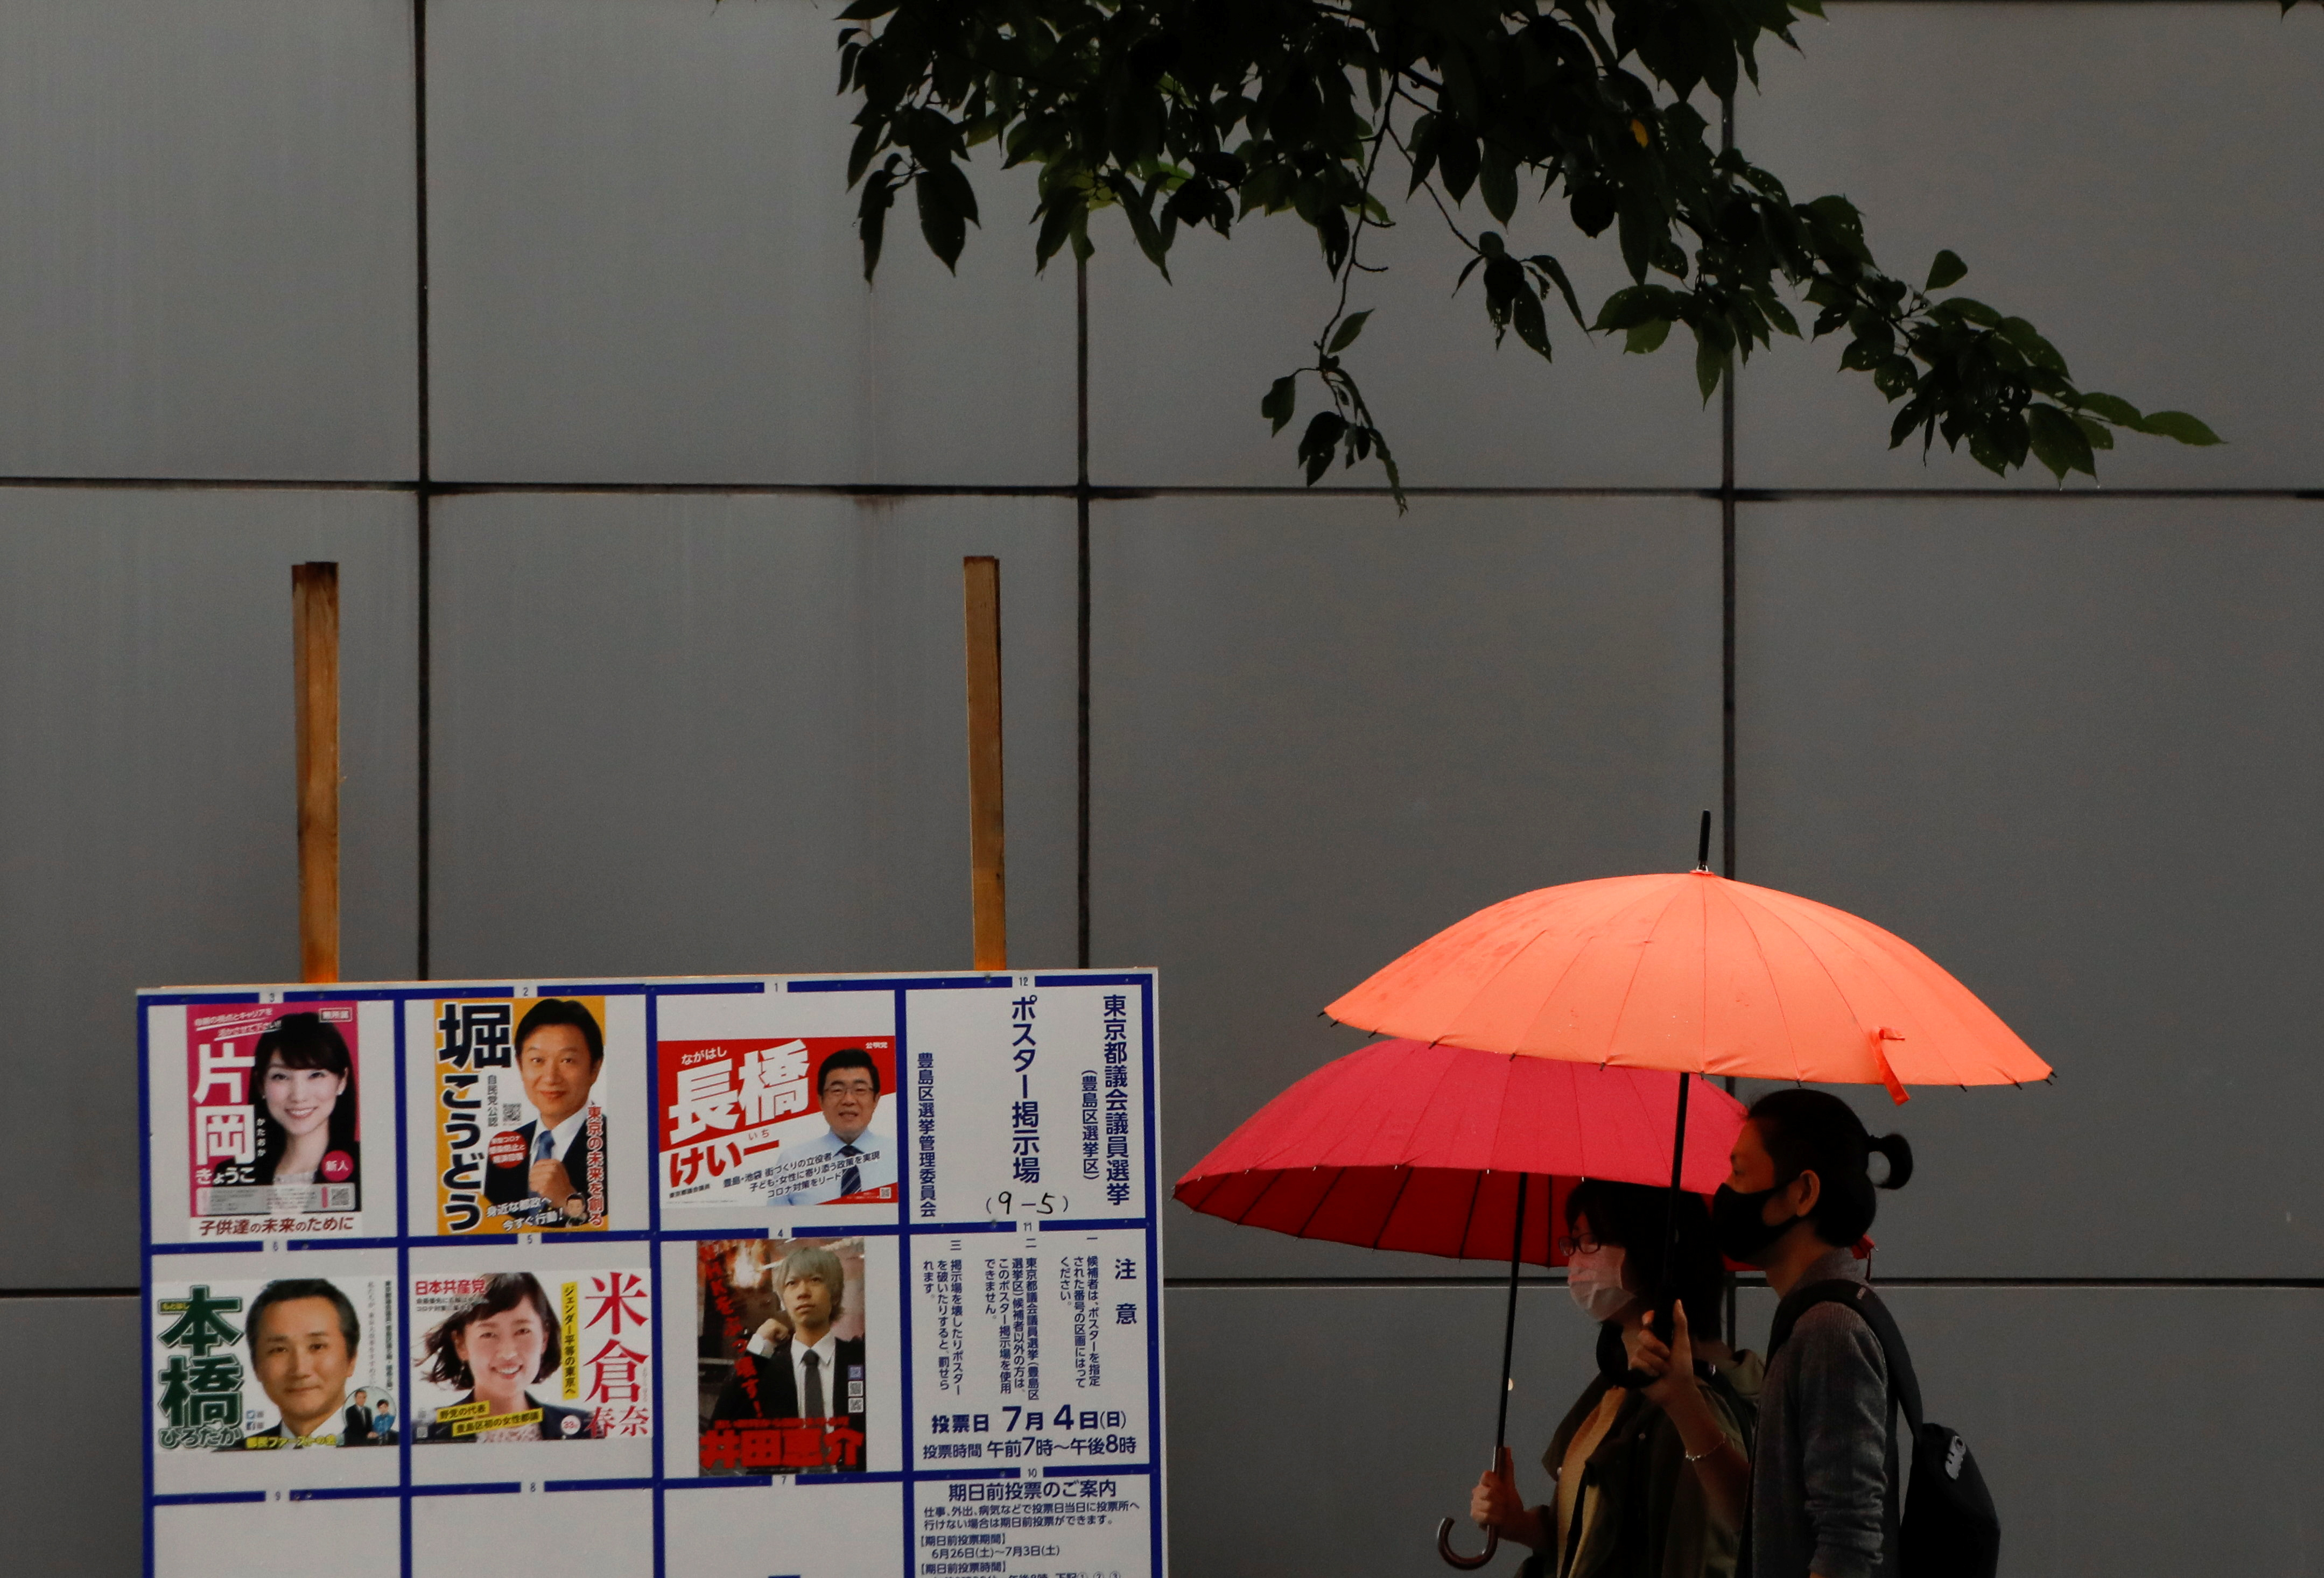 Voters wearing protective face masks walk next to a board displaying posters of candidates for the Tokyo Metropolitan Assembly election near a polling station, amid the coronavirus disease (COVID-19) outbreak, in Tokyo, Japan July 4, 2021.  REUTERS/Issei Kato